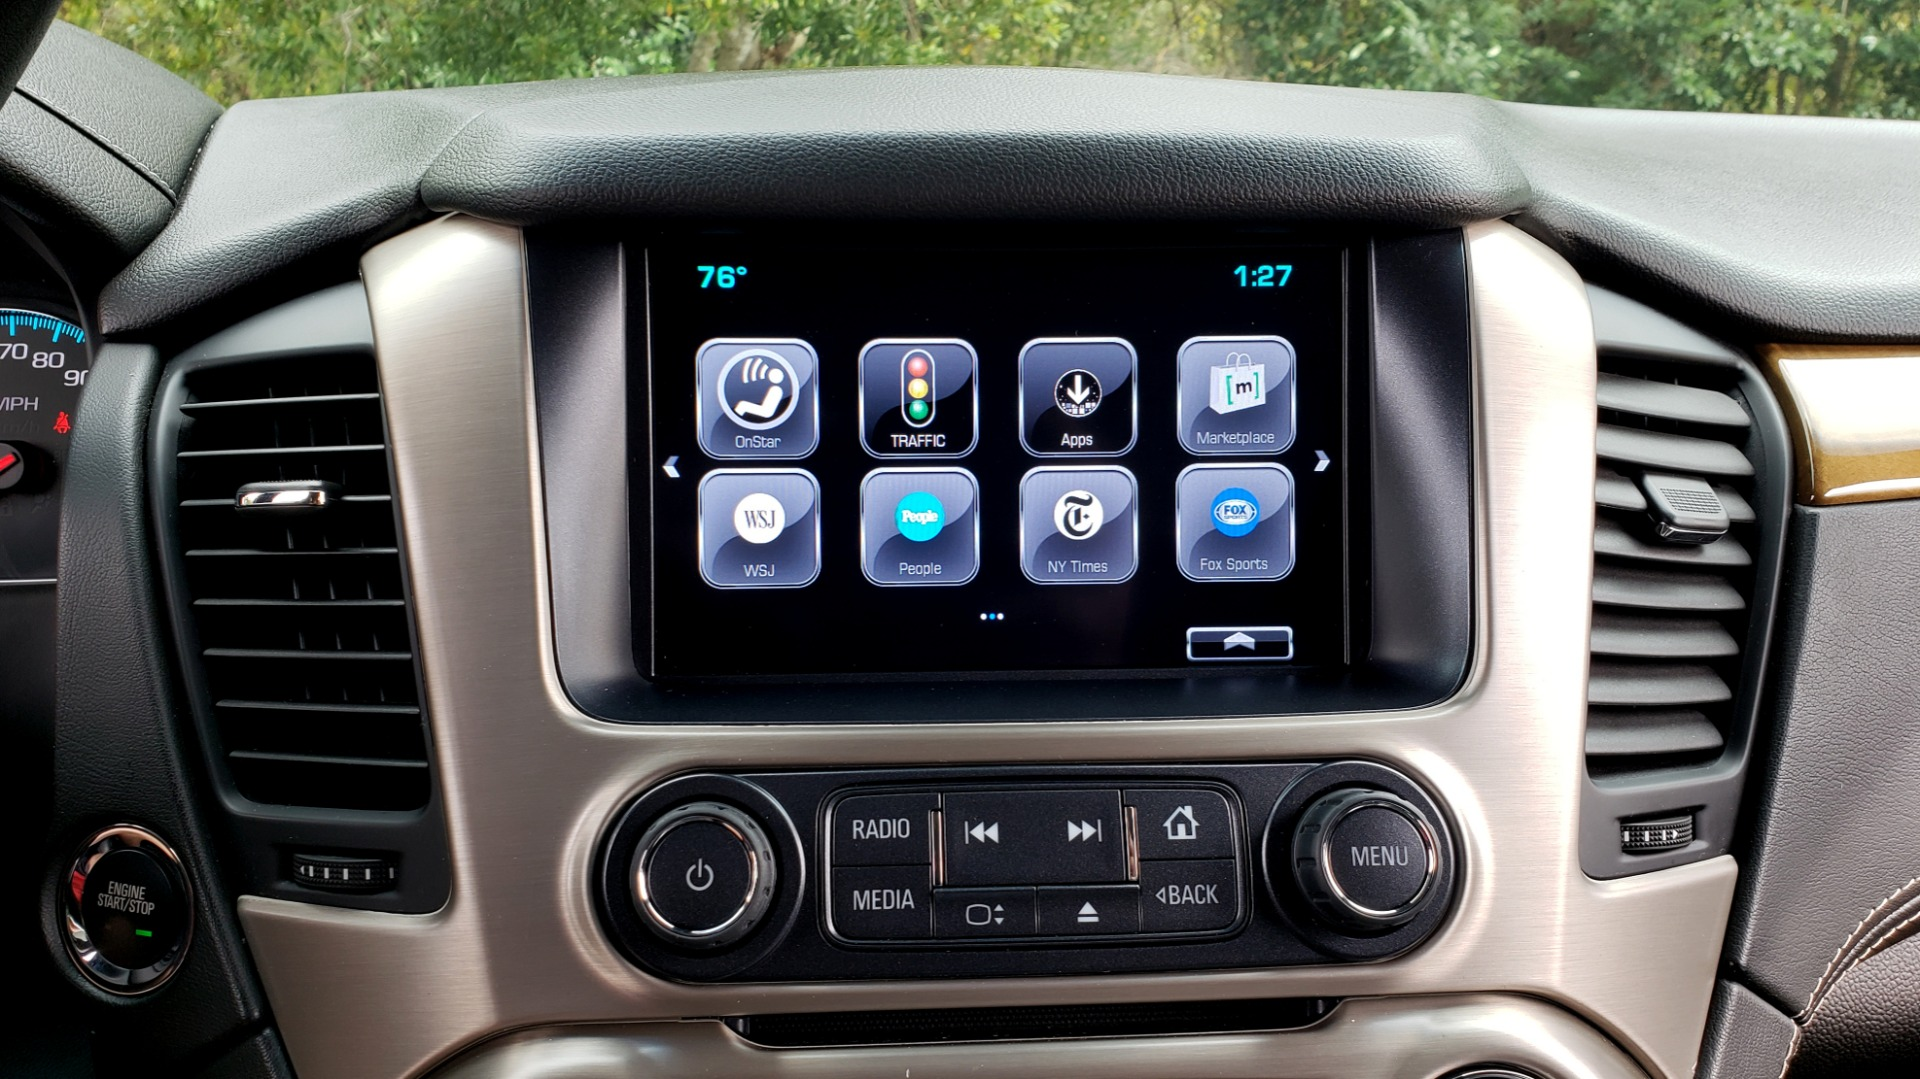 Used 2017 GMC YUKON XL DENALI 4WD / NAV / SUNROOF / ENT / 3-ROWS / BOSE / REARVIEW for sale $48,695 at Formula Imports in Charlotte NC 28227 54